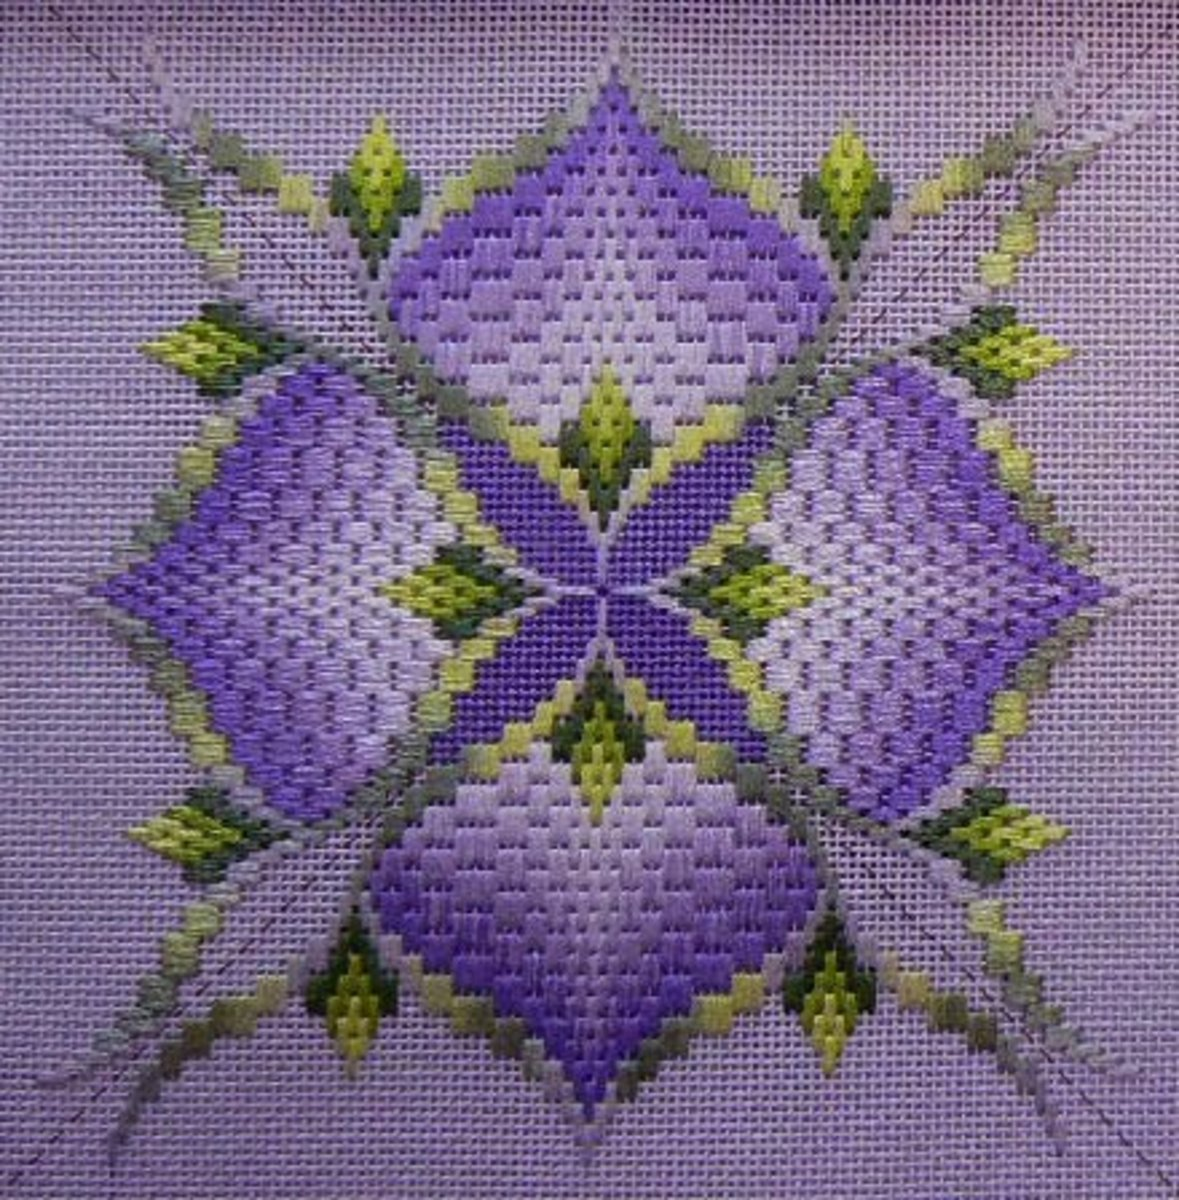 Learn Bargello Stitch - Make Beautiful Designs on Canvas